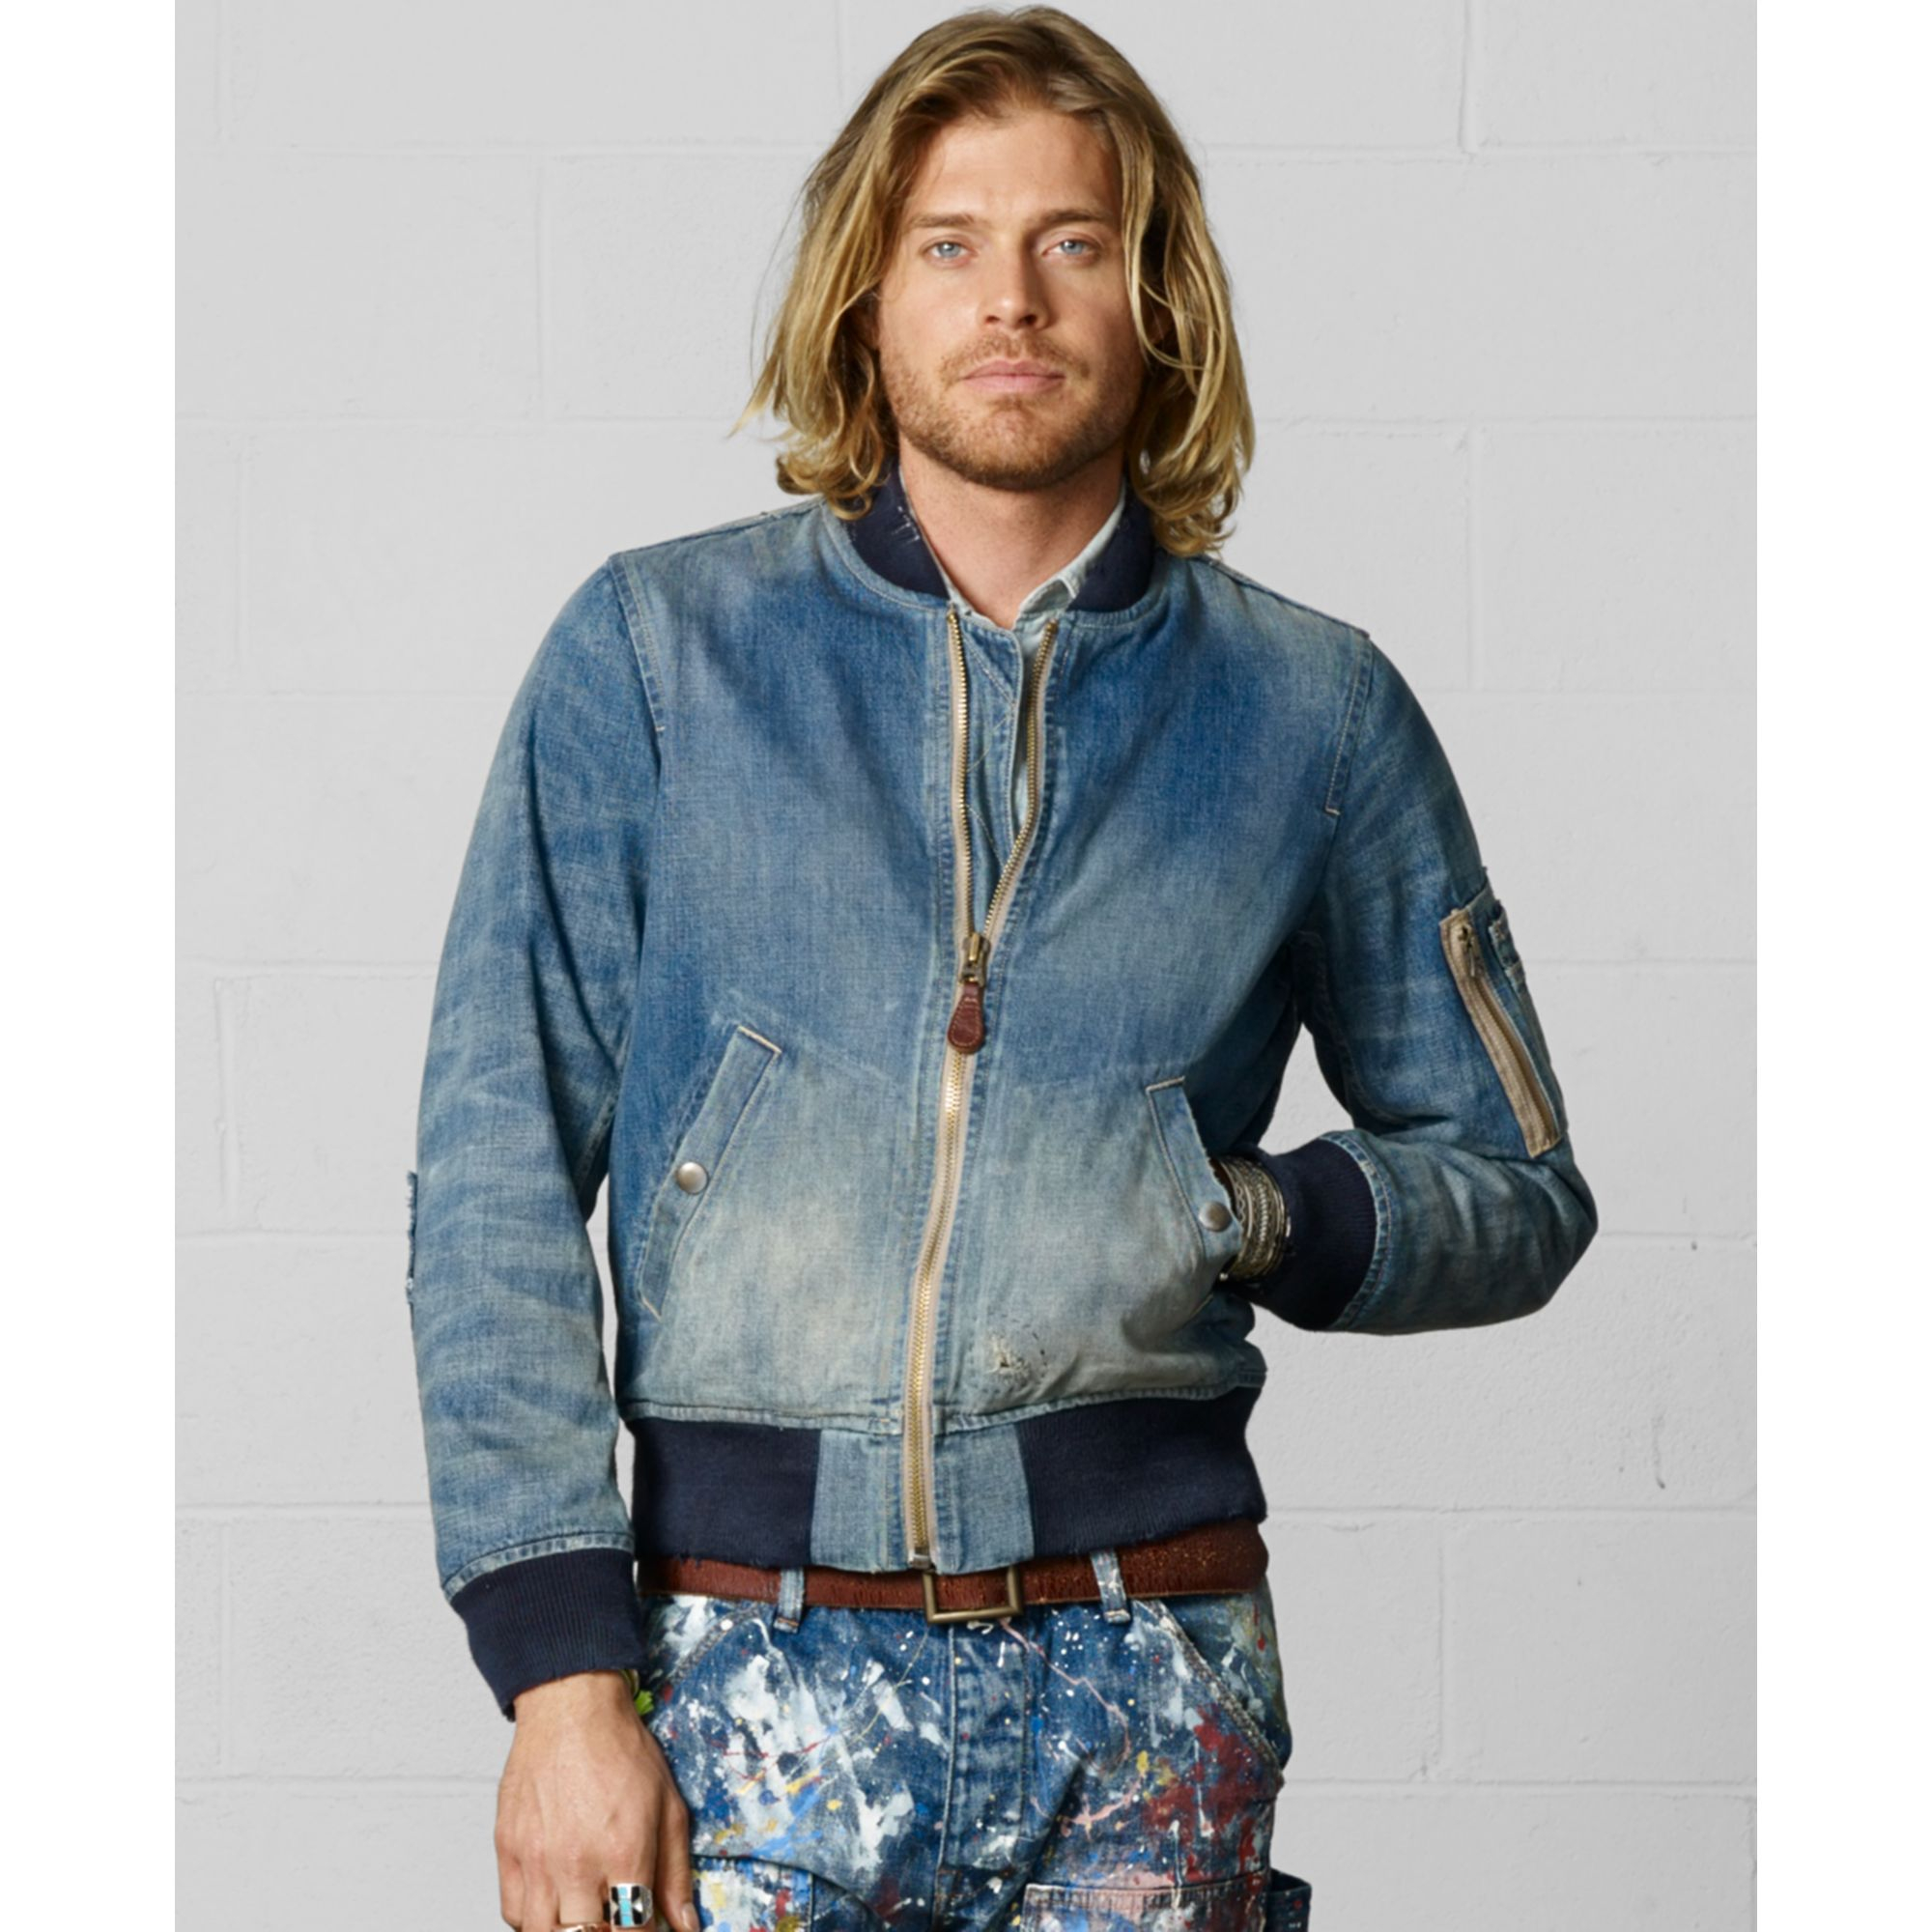 Lyst - Denim u0026 Supply Ralph Lauren Lassen Denim Jacket in Blue for Men